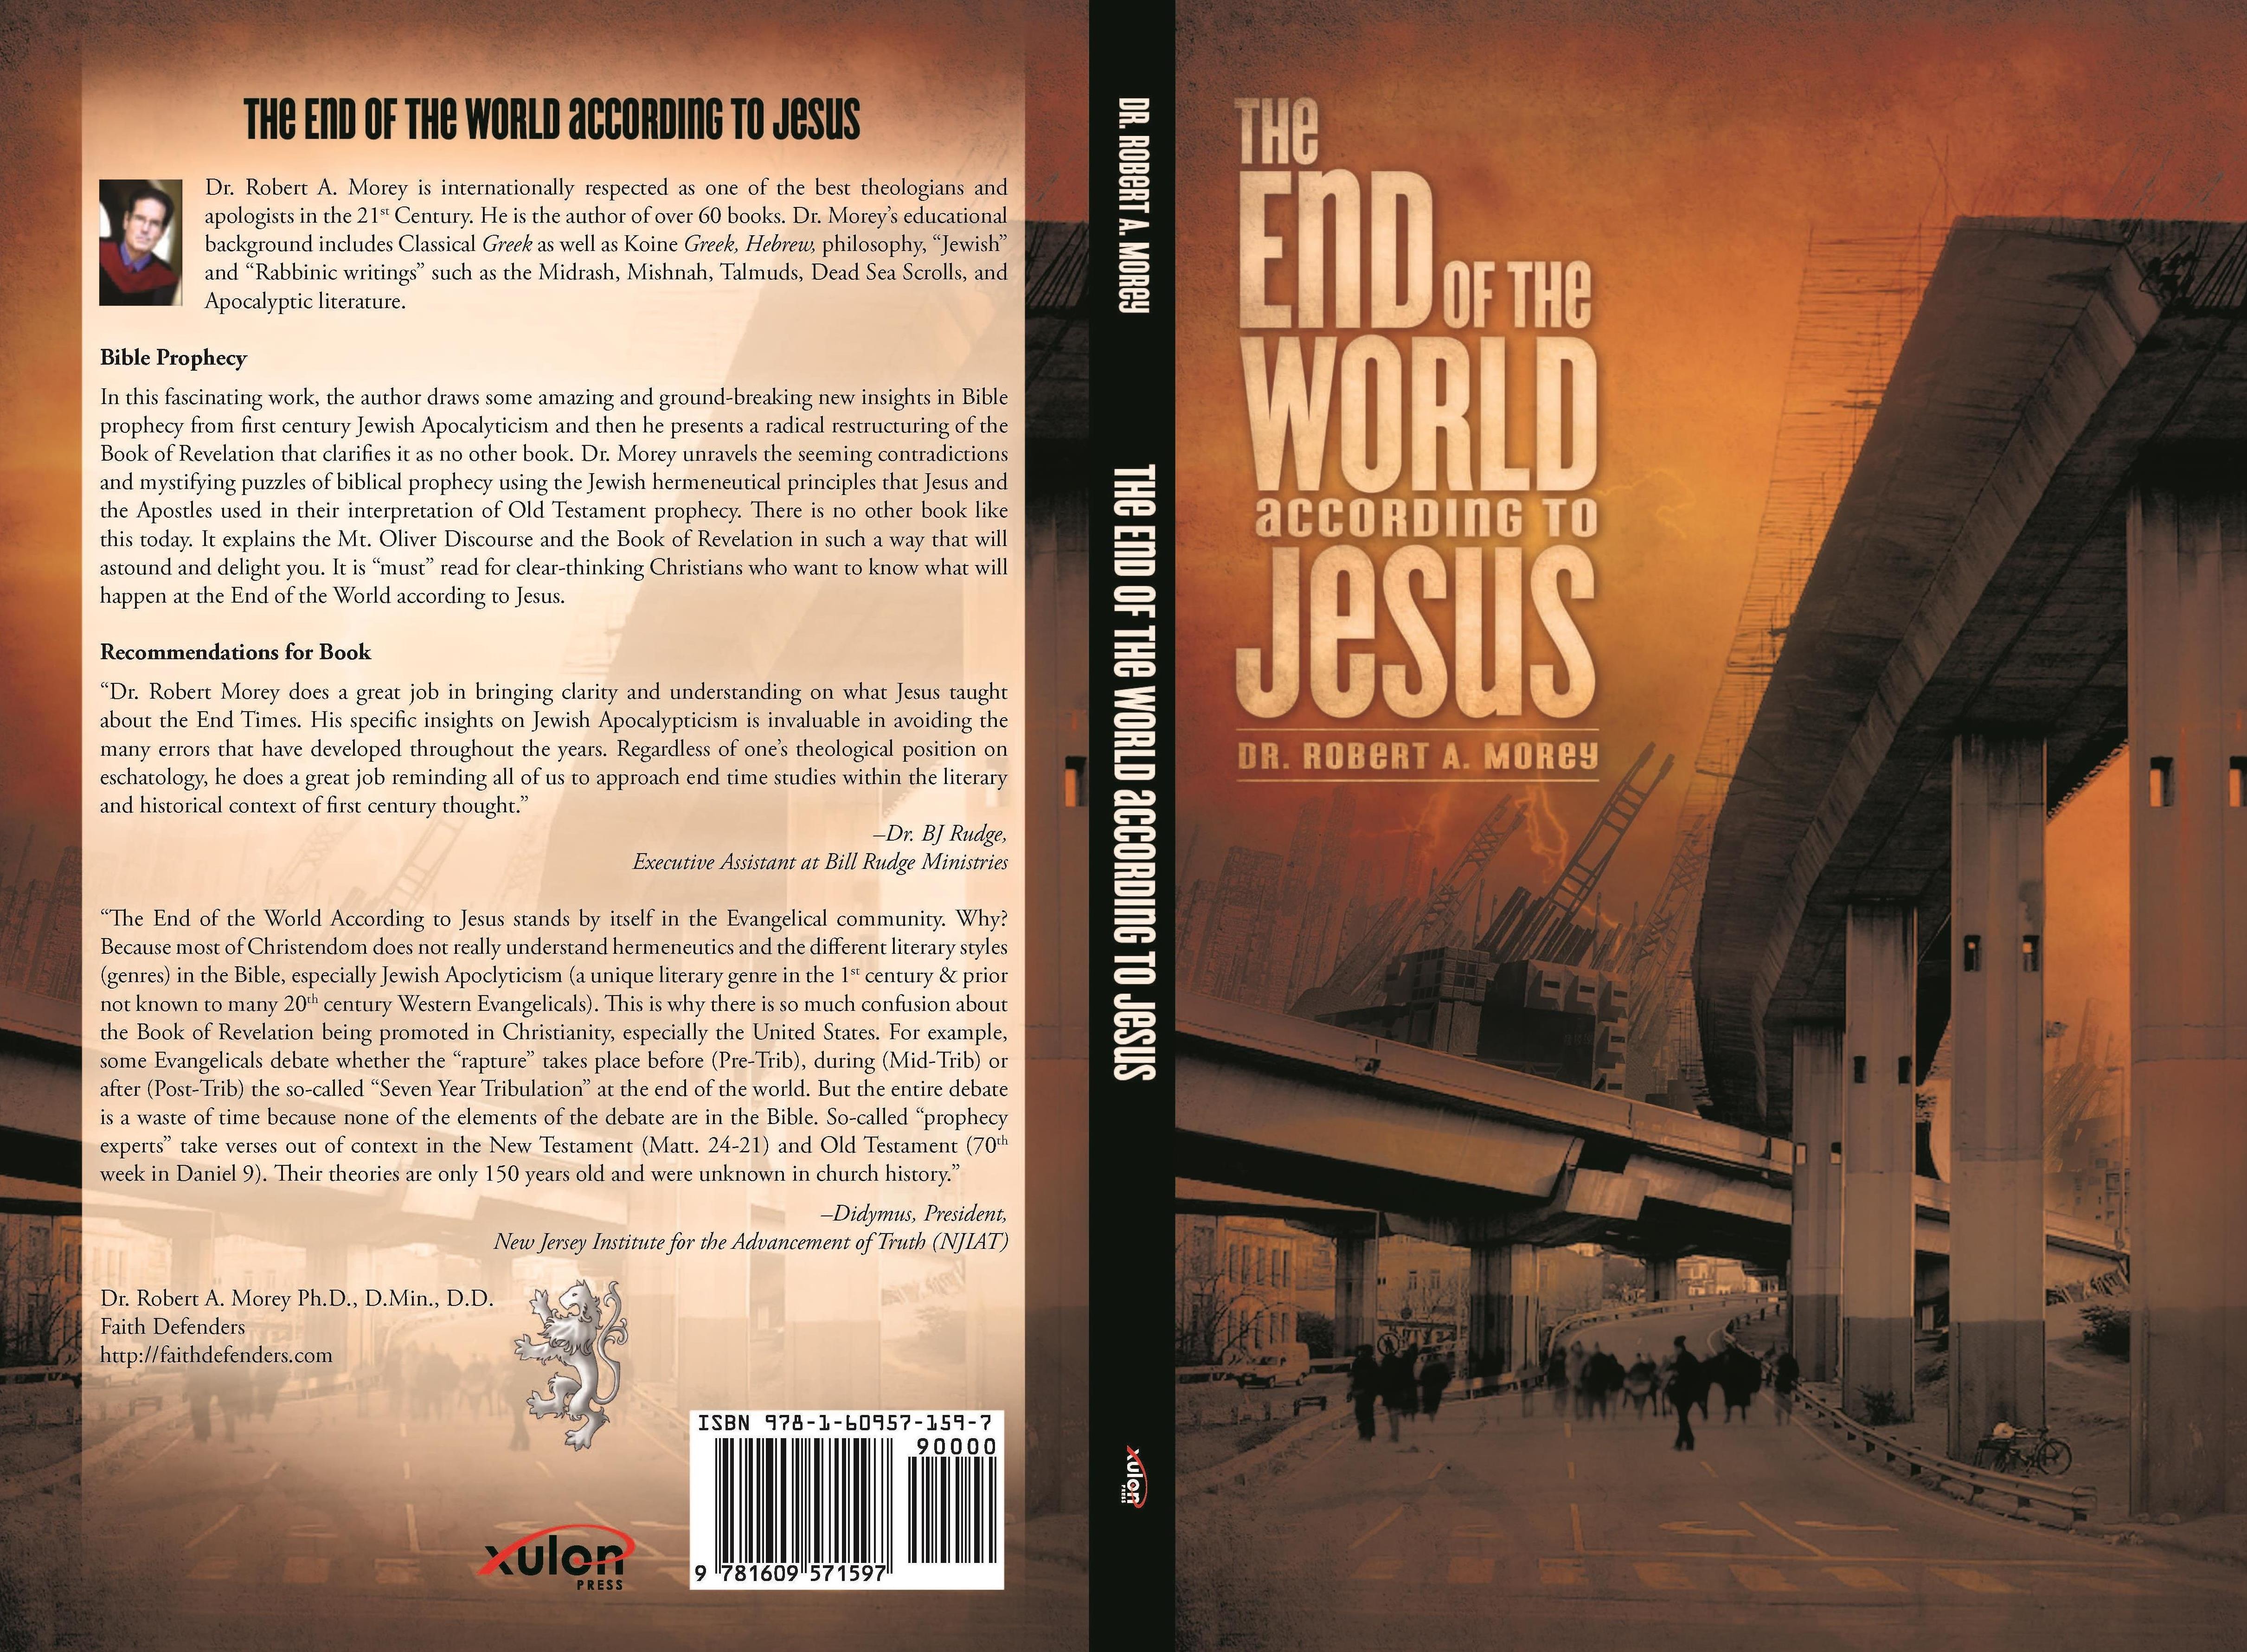 The End of the World According to Jesus by Dr. Robert A Morey